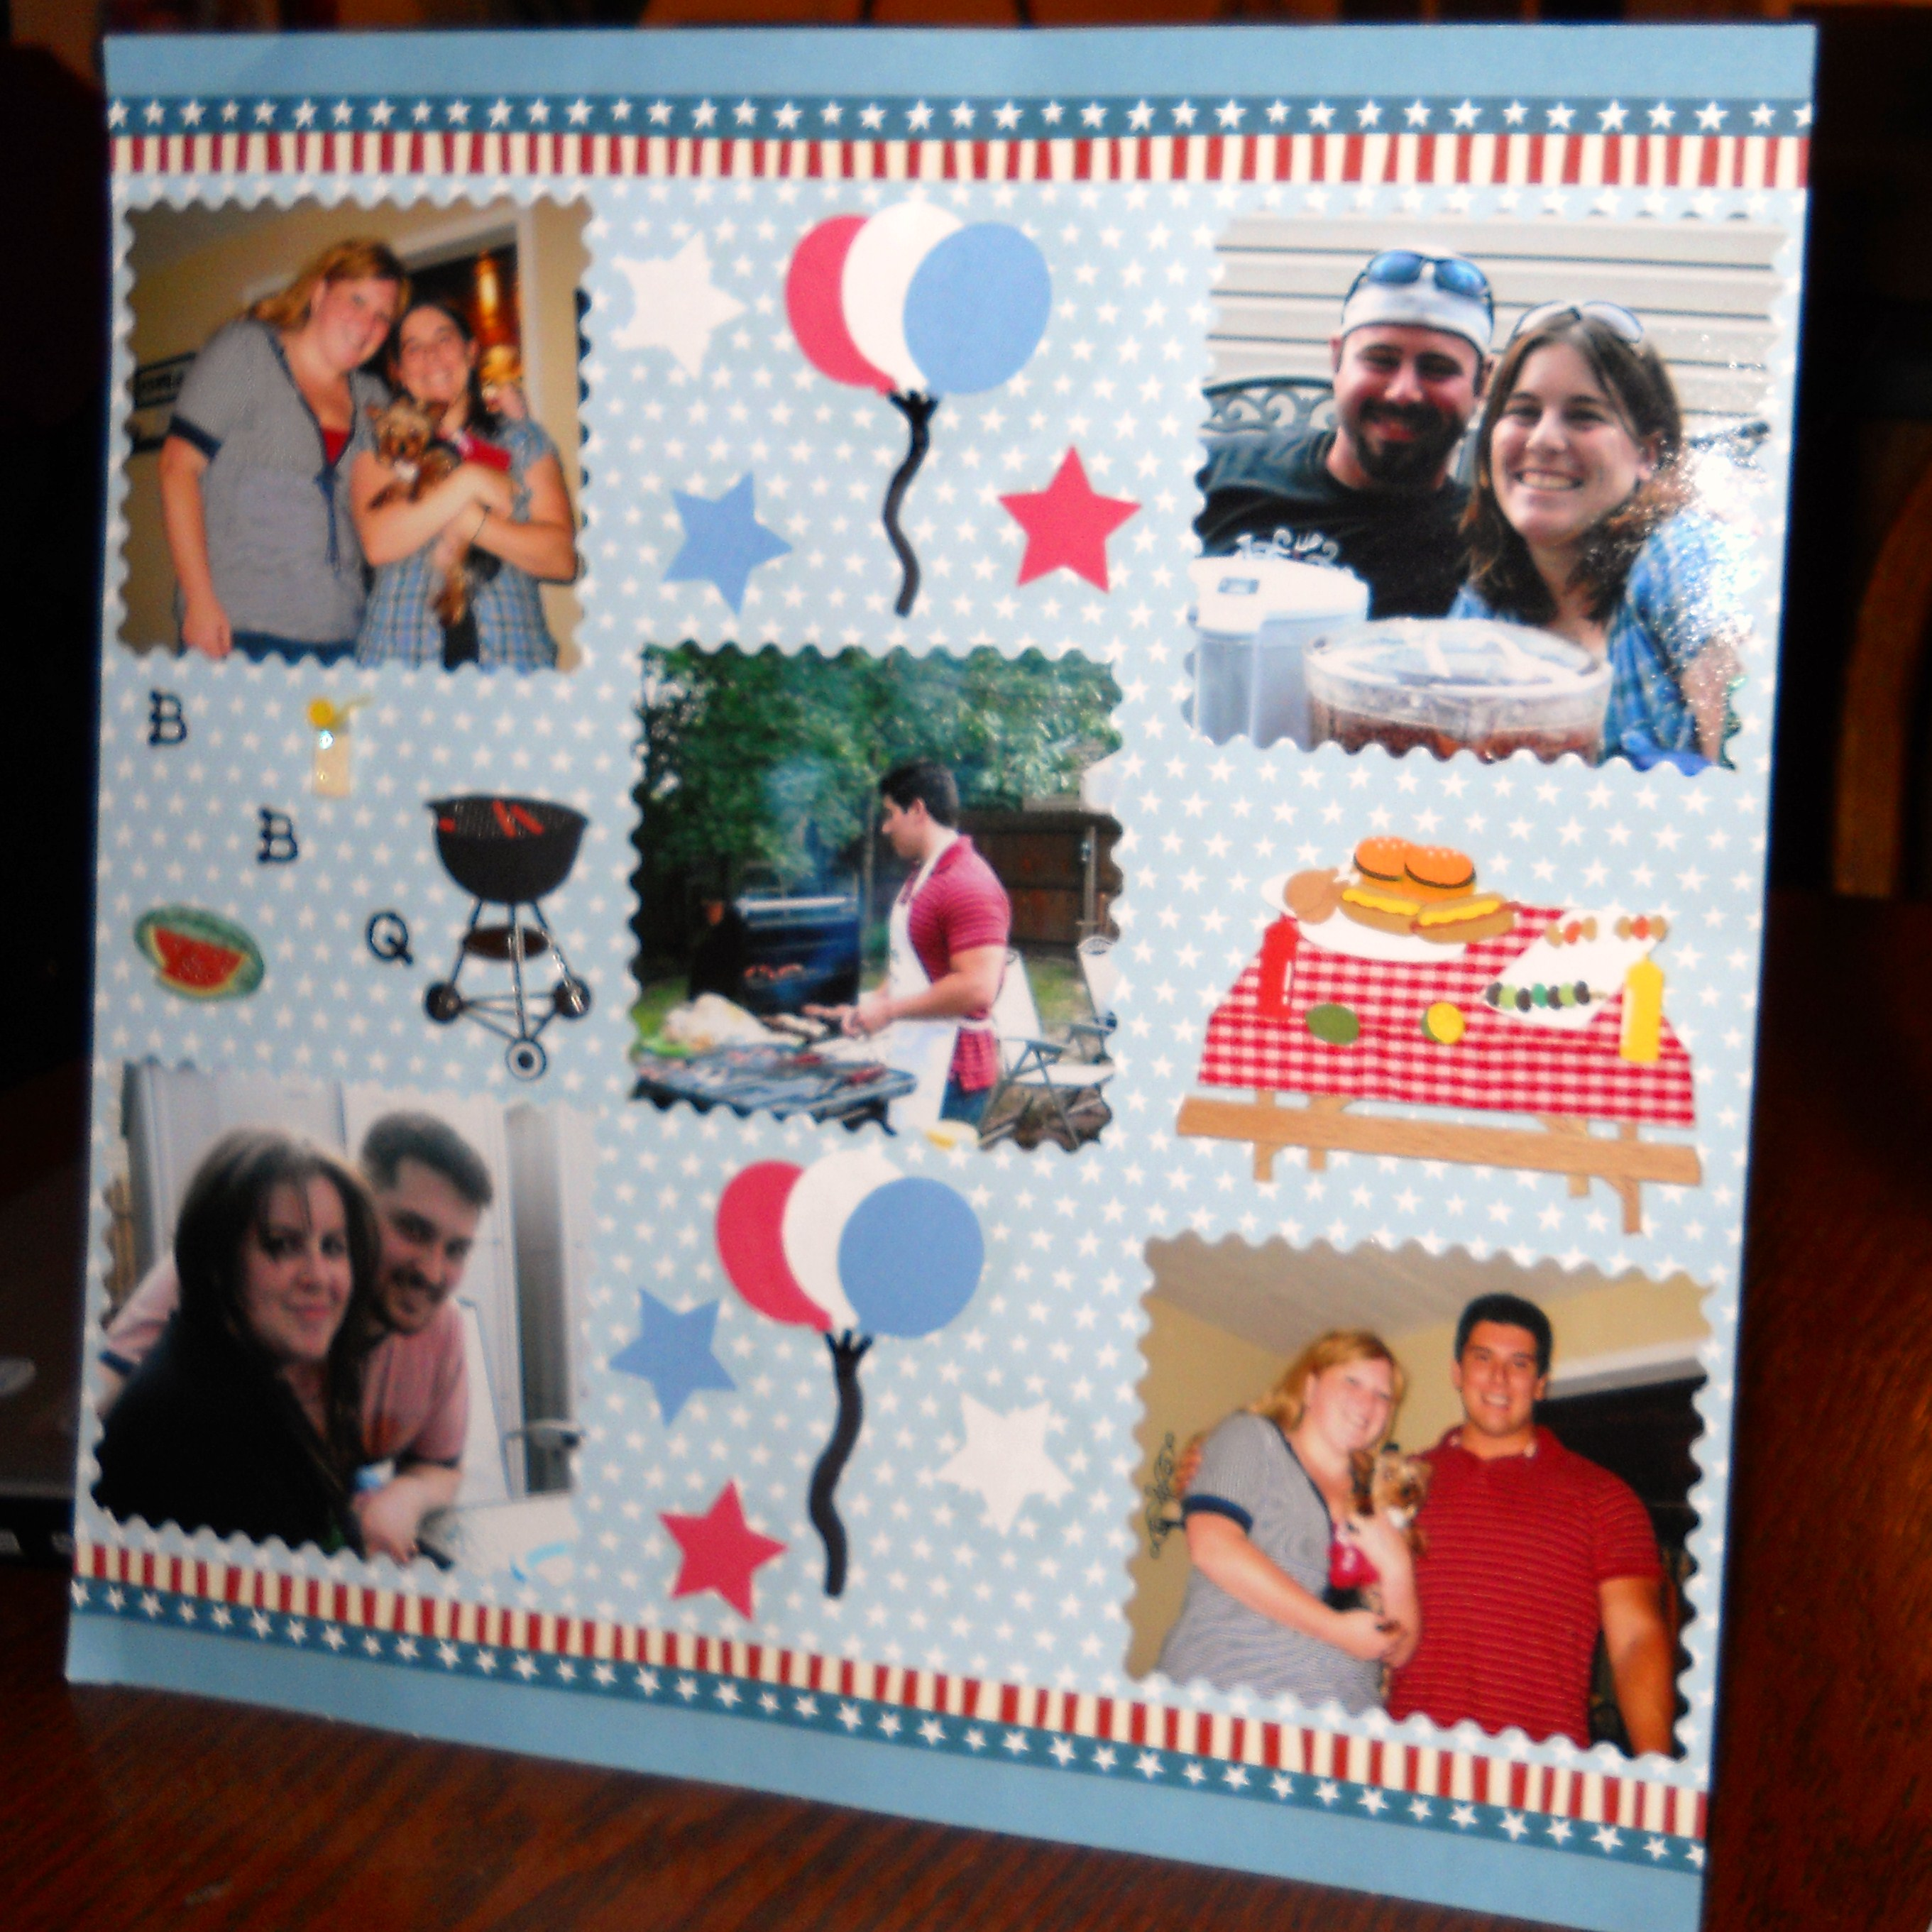 Juliet scrapbook ideas - Luckily Almost Everything You Would Need For A Basic Can Be Found At Michaels Ora C Moore Craft Stores The First Thing You Need Is A Scrapbook